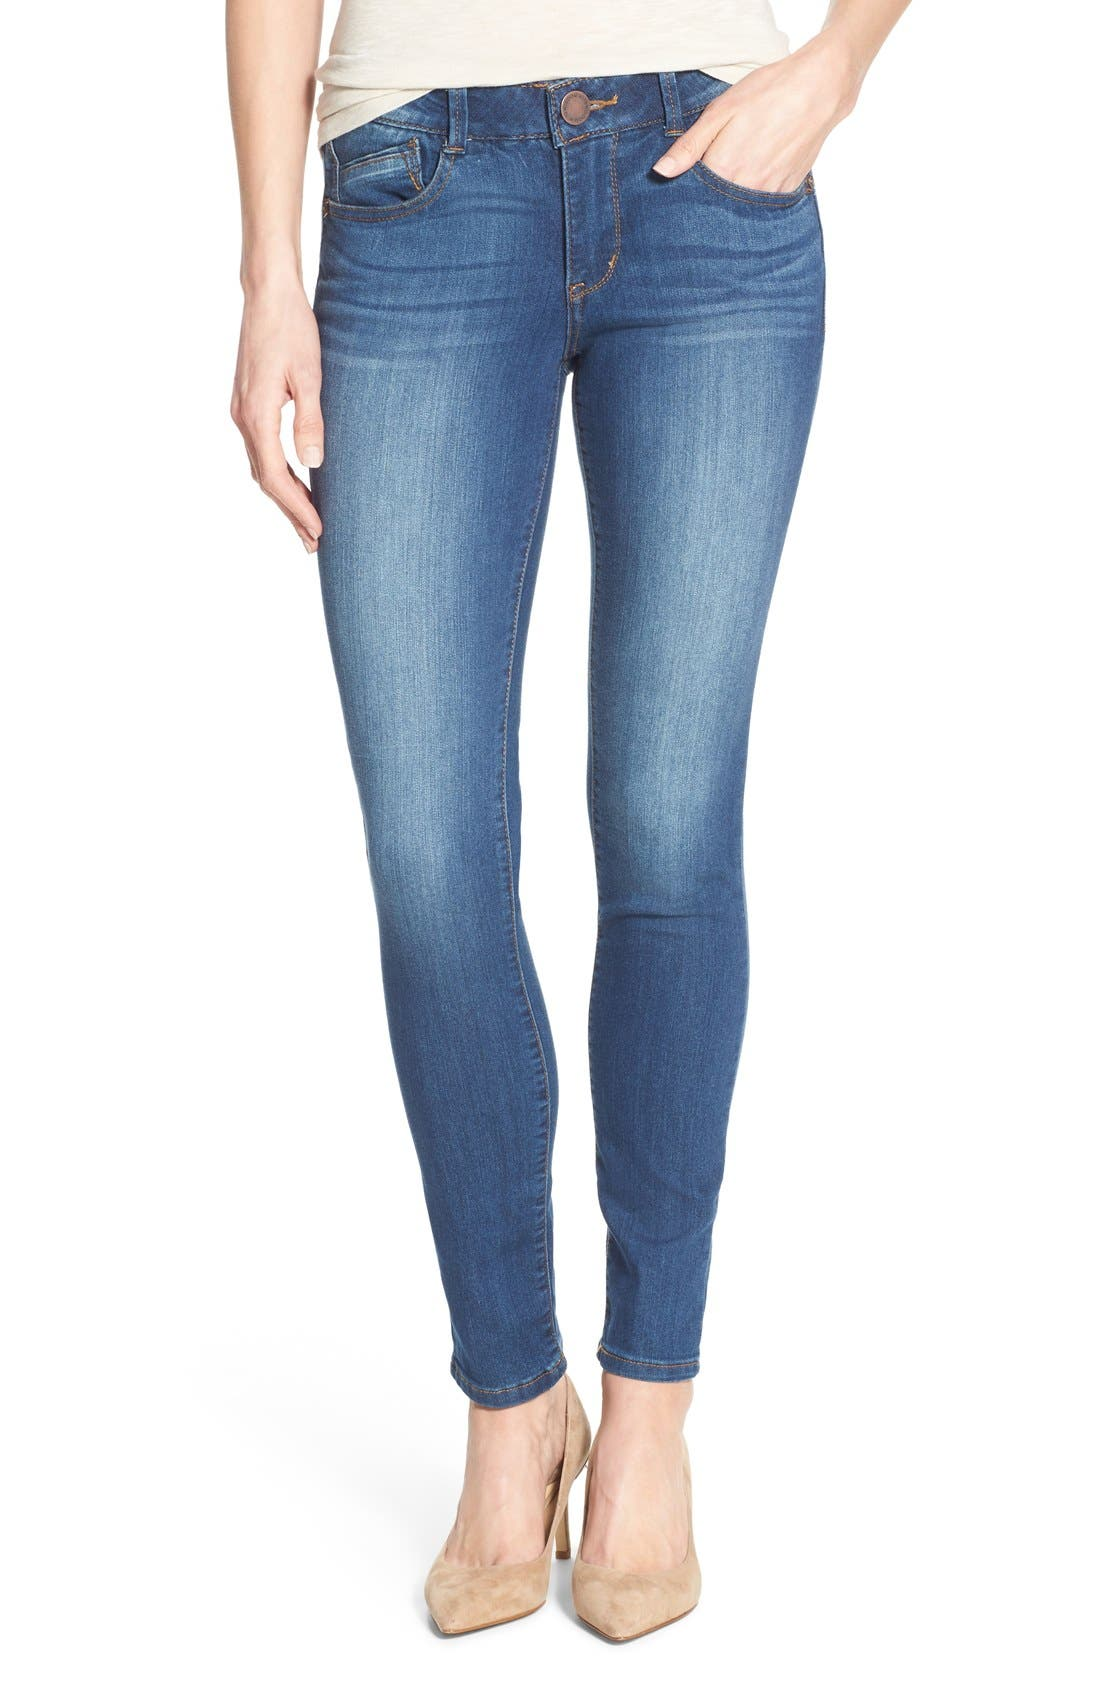 Alternate Image 1 Selected - Wit & Wisdom Ab-solution Stretch Skinny Jeans (Nordstrom Exclusive)